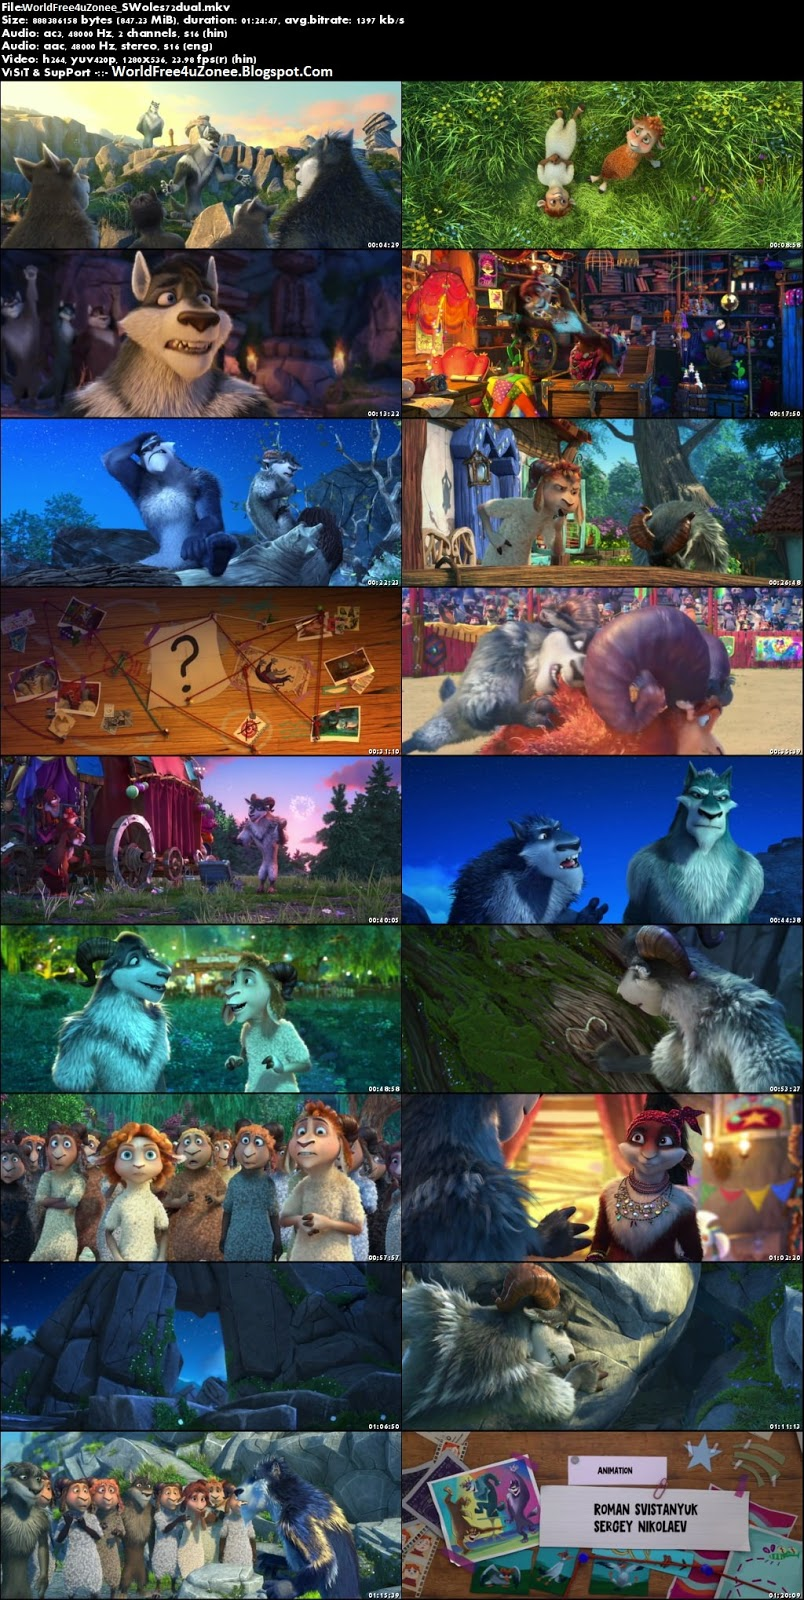 Sheep & Wolves (2016) Dual Audio BRRip 720p 800MB Full Movie Free Download And Watch Online Latest Hollywood Cartoon Movies Dual Audio Free At WorldFree4uZonee.Blogspot.Com